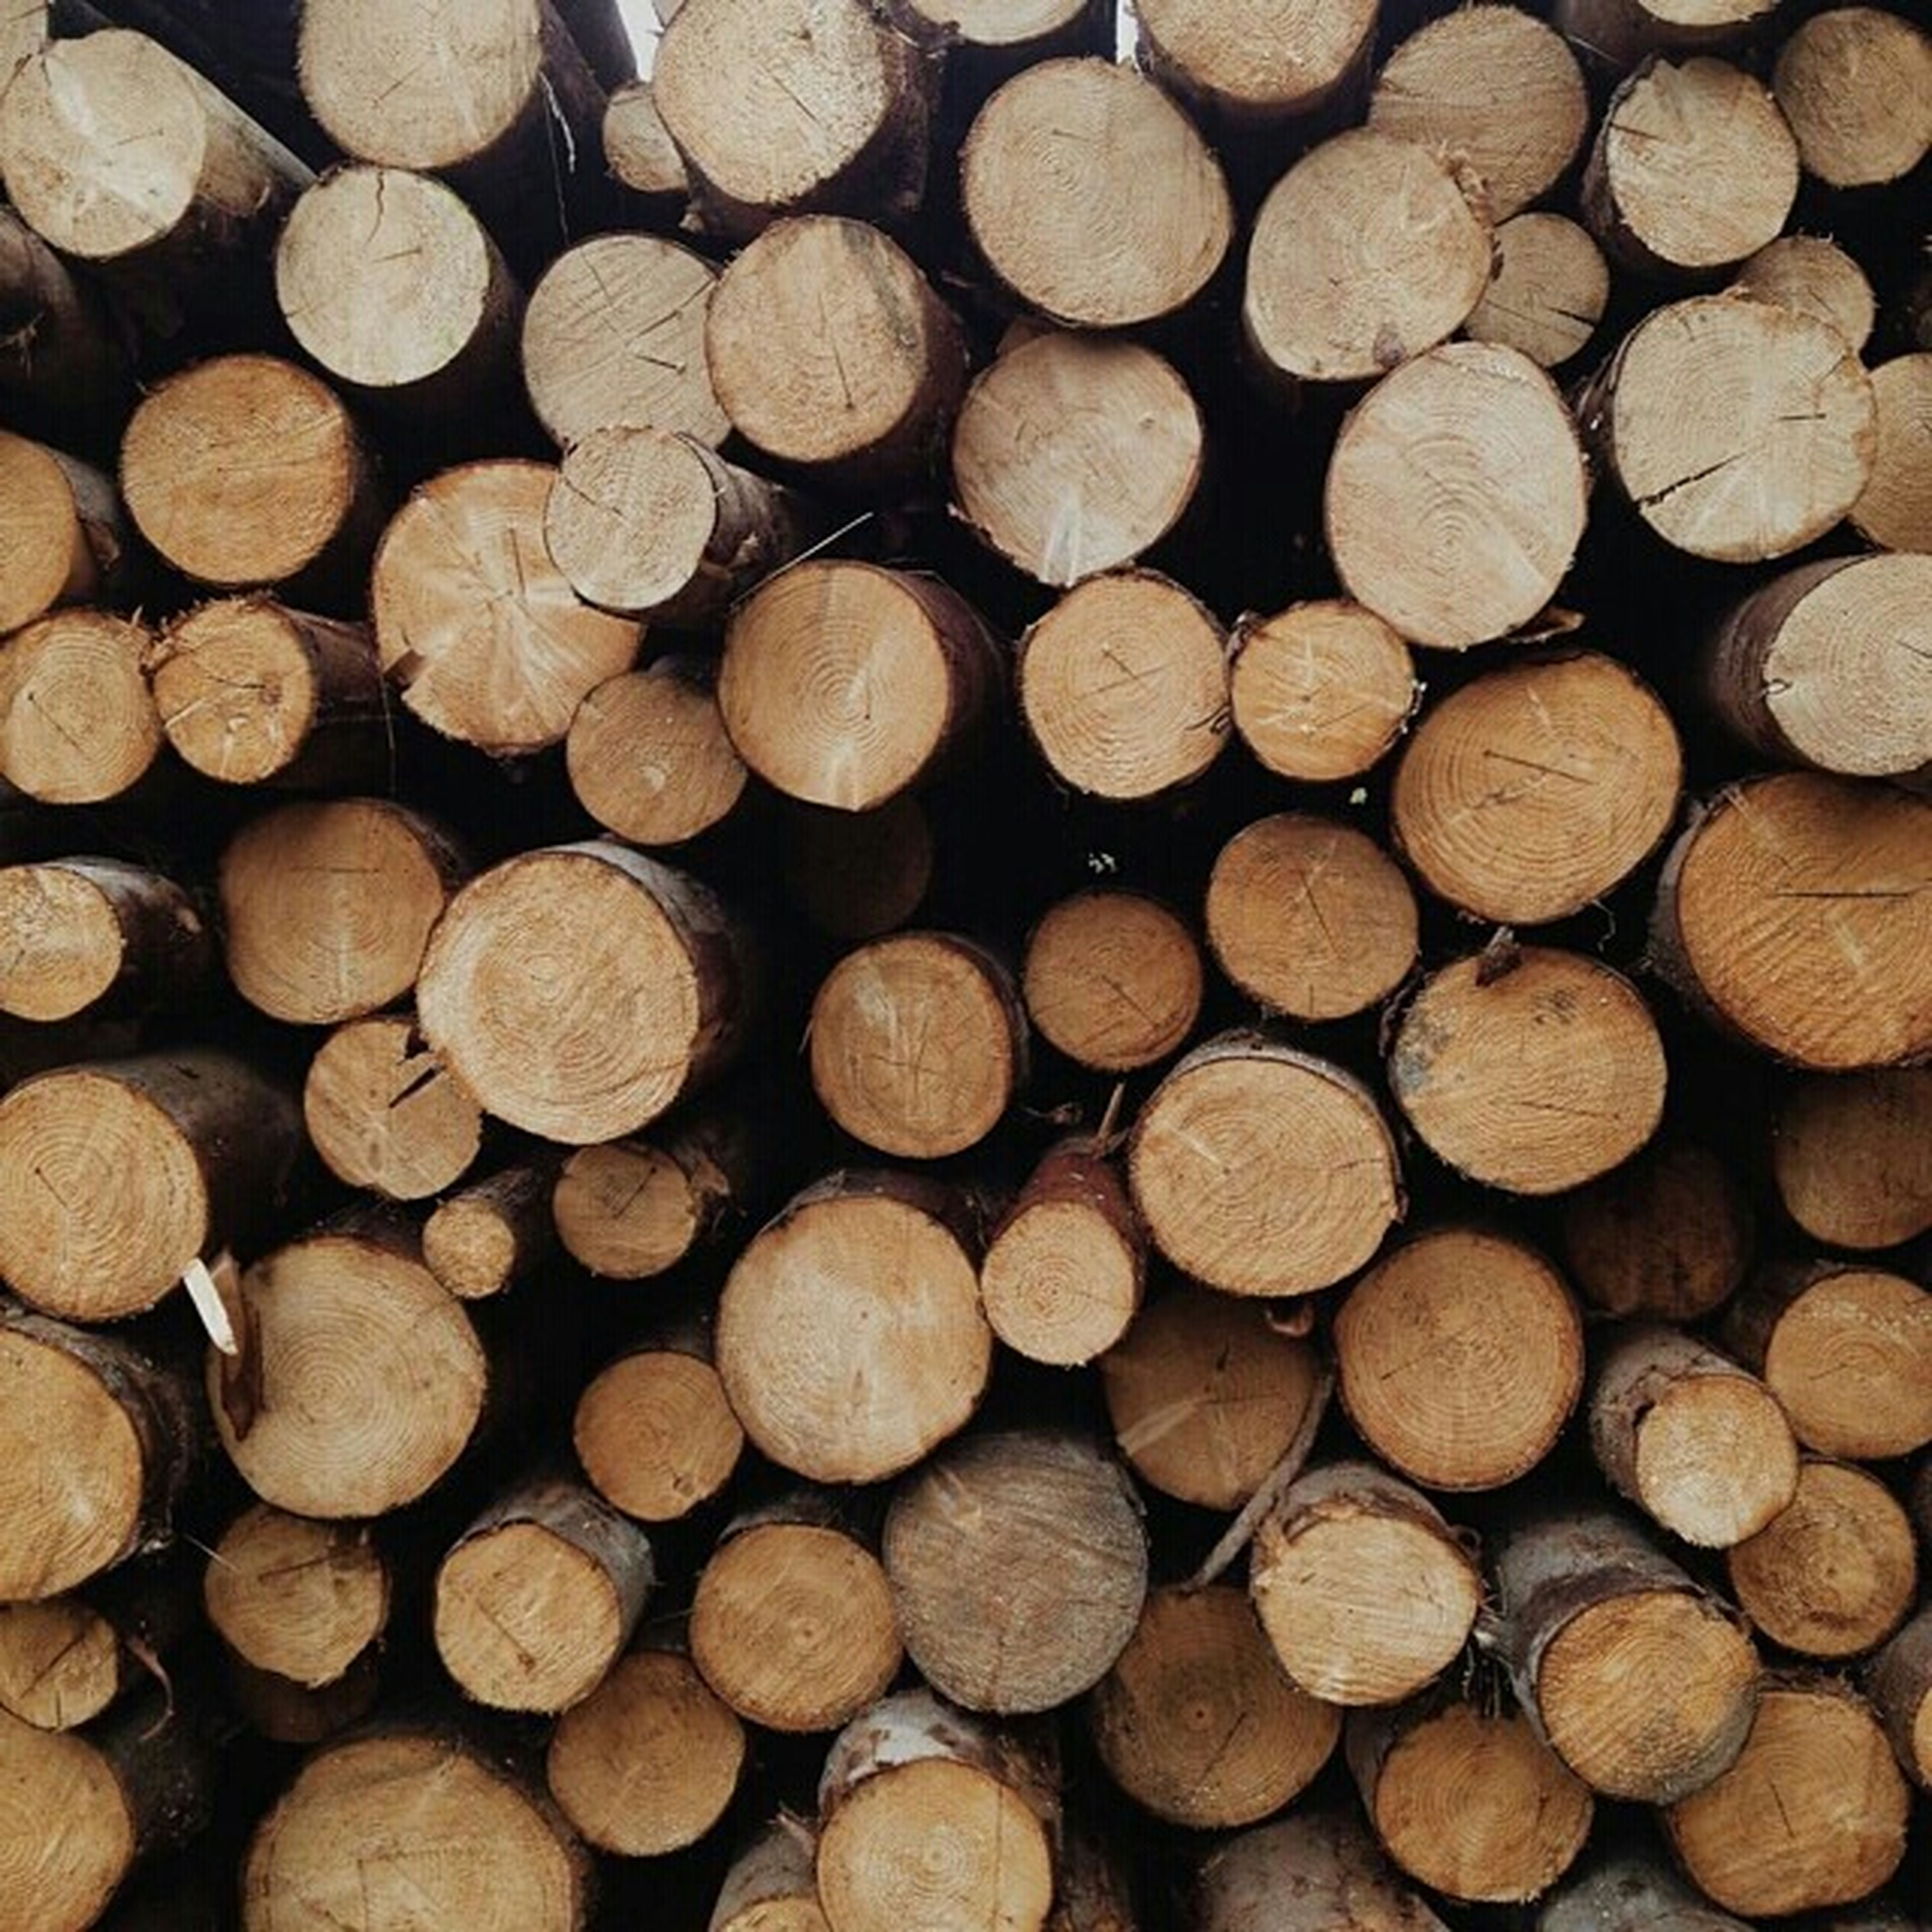 firewood, large group of objects, abundance, lumber industry, deforestation, stack, log, timber, full frame, backgrounds, wood - material, environmental issues, heap, fossil fuel, woodpile, fuel and power generation, pile, textured, wood, arrangement